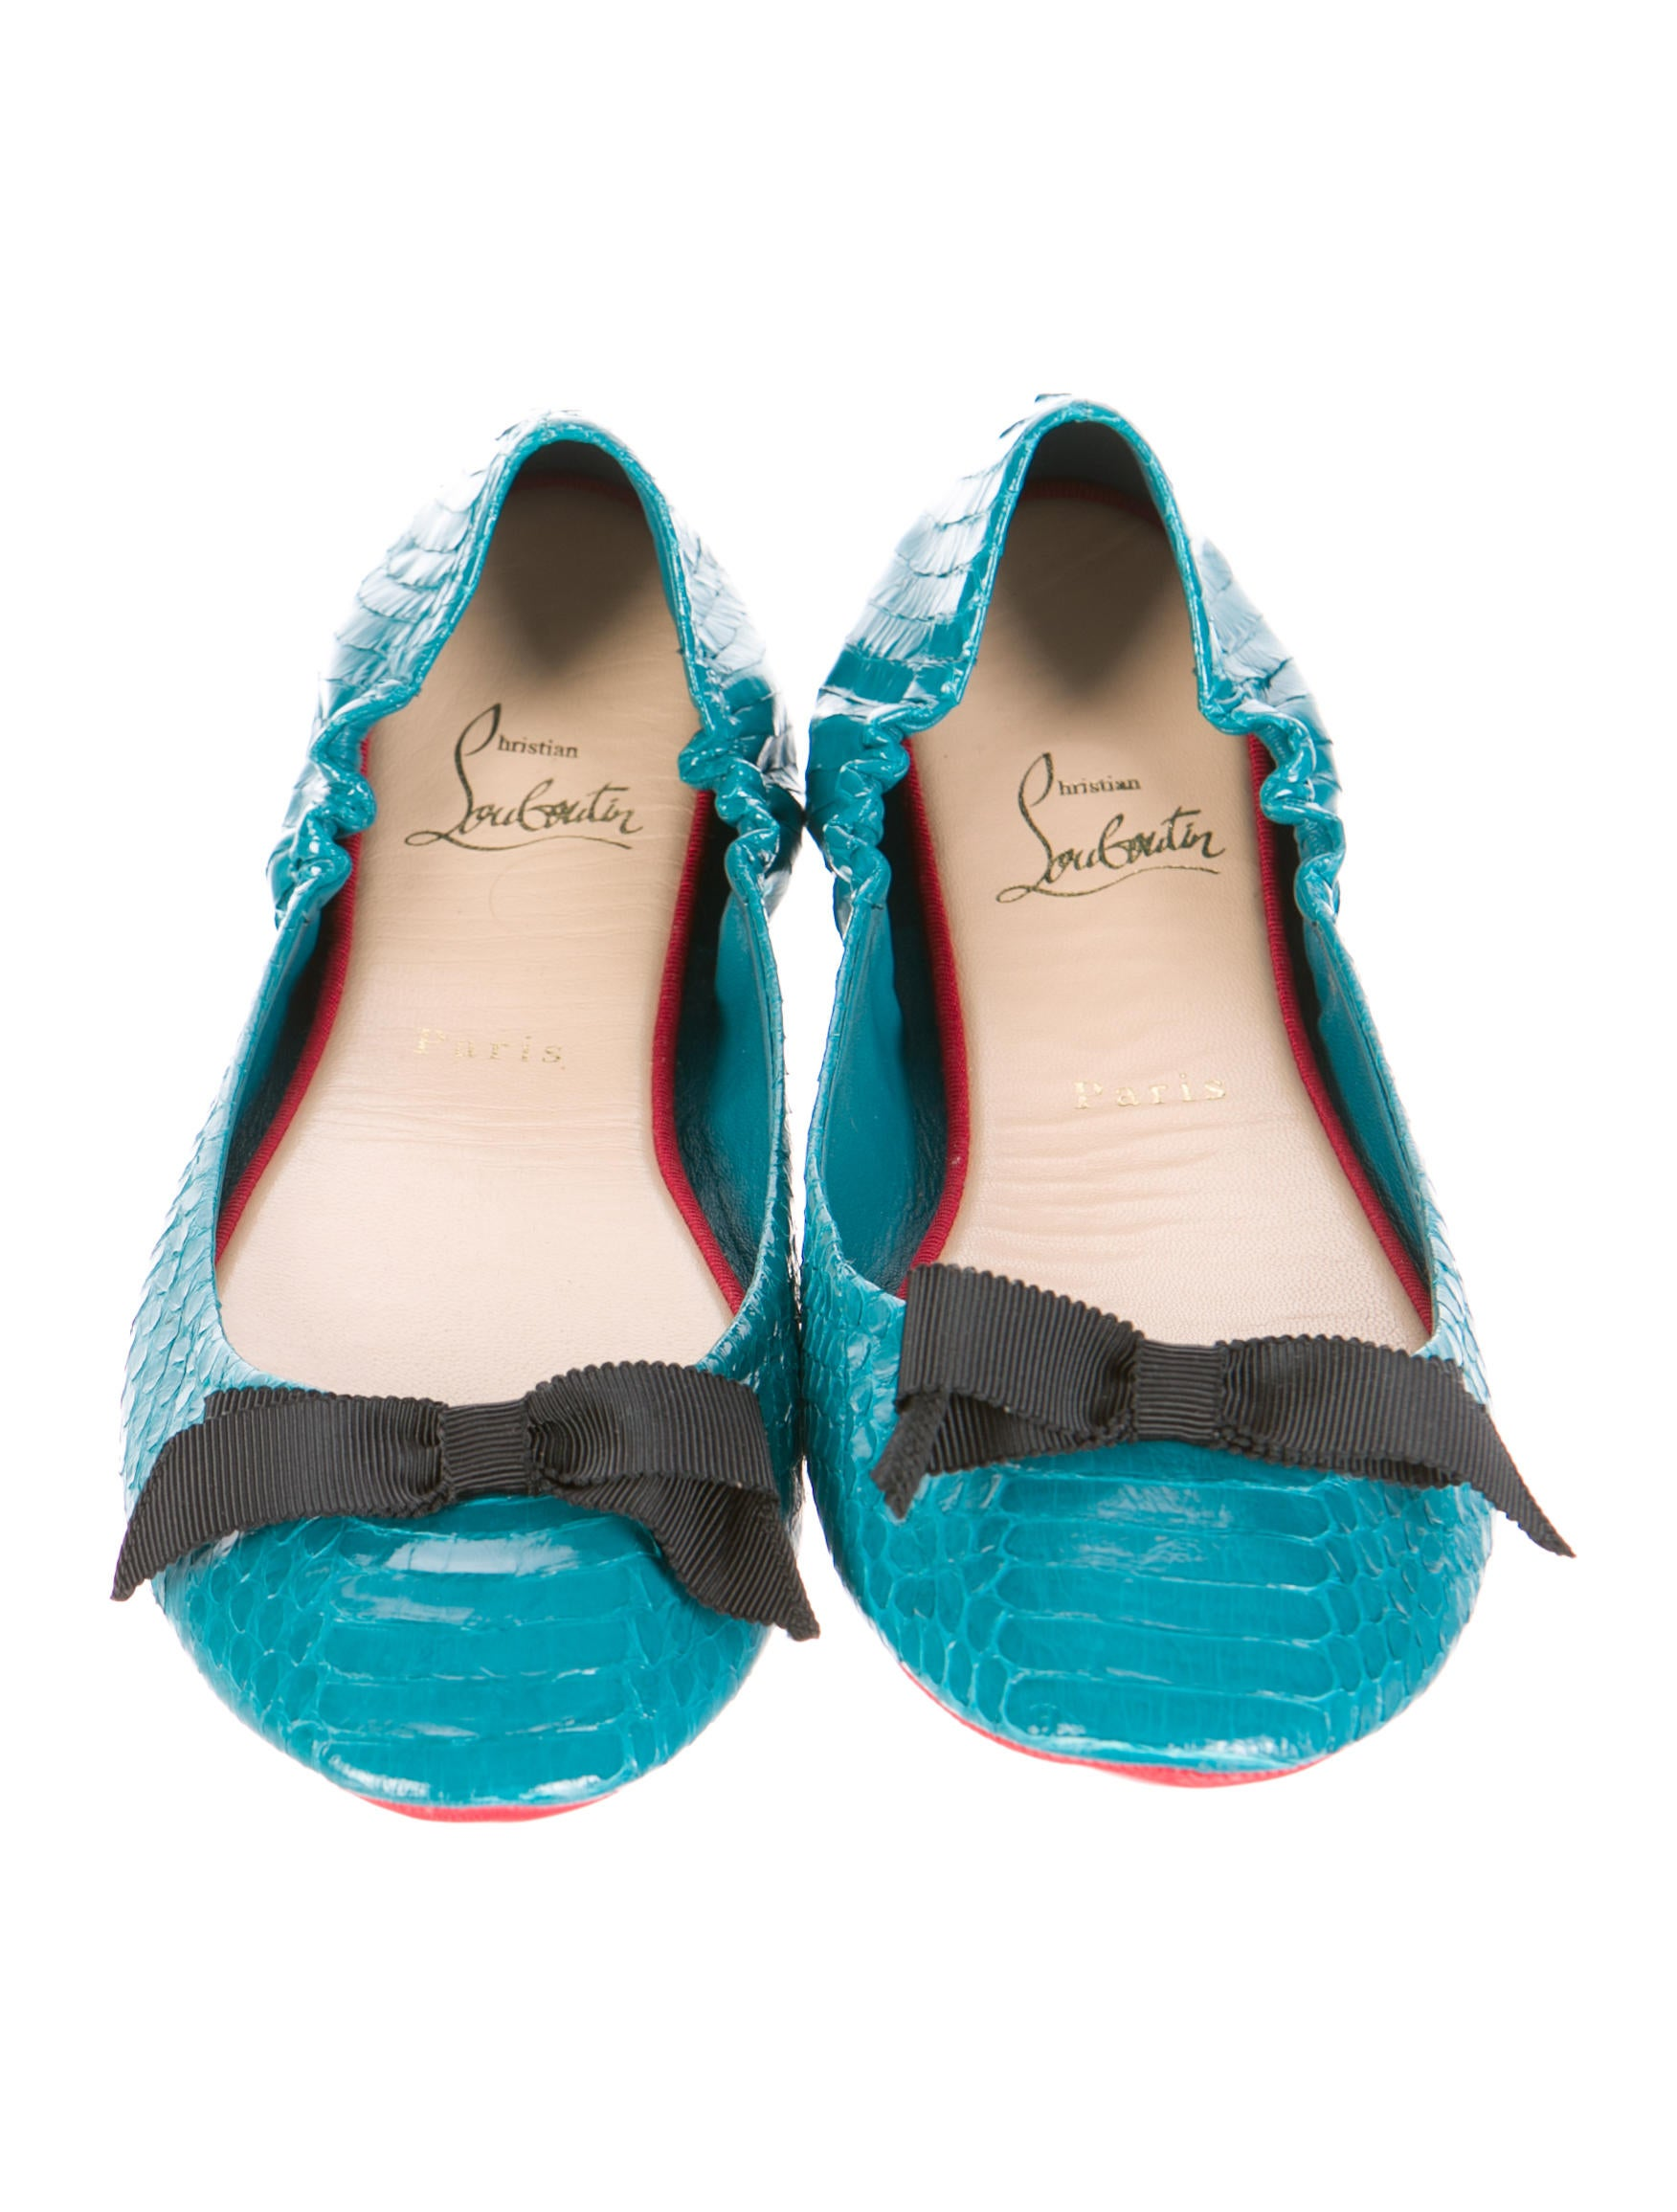 1197775ab13a ... louboutin trainers - Christian Louboutin Watersnake Round-Toe Flats w   Tags - Shoes . ...